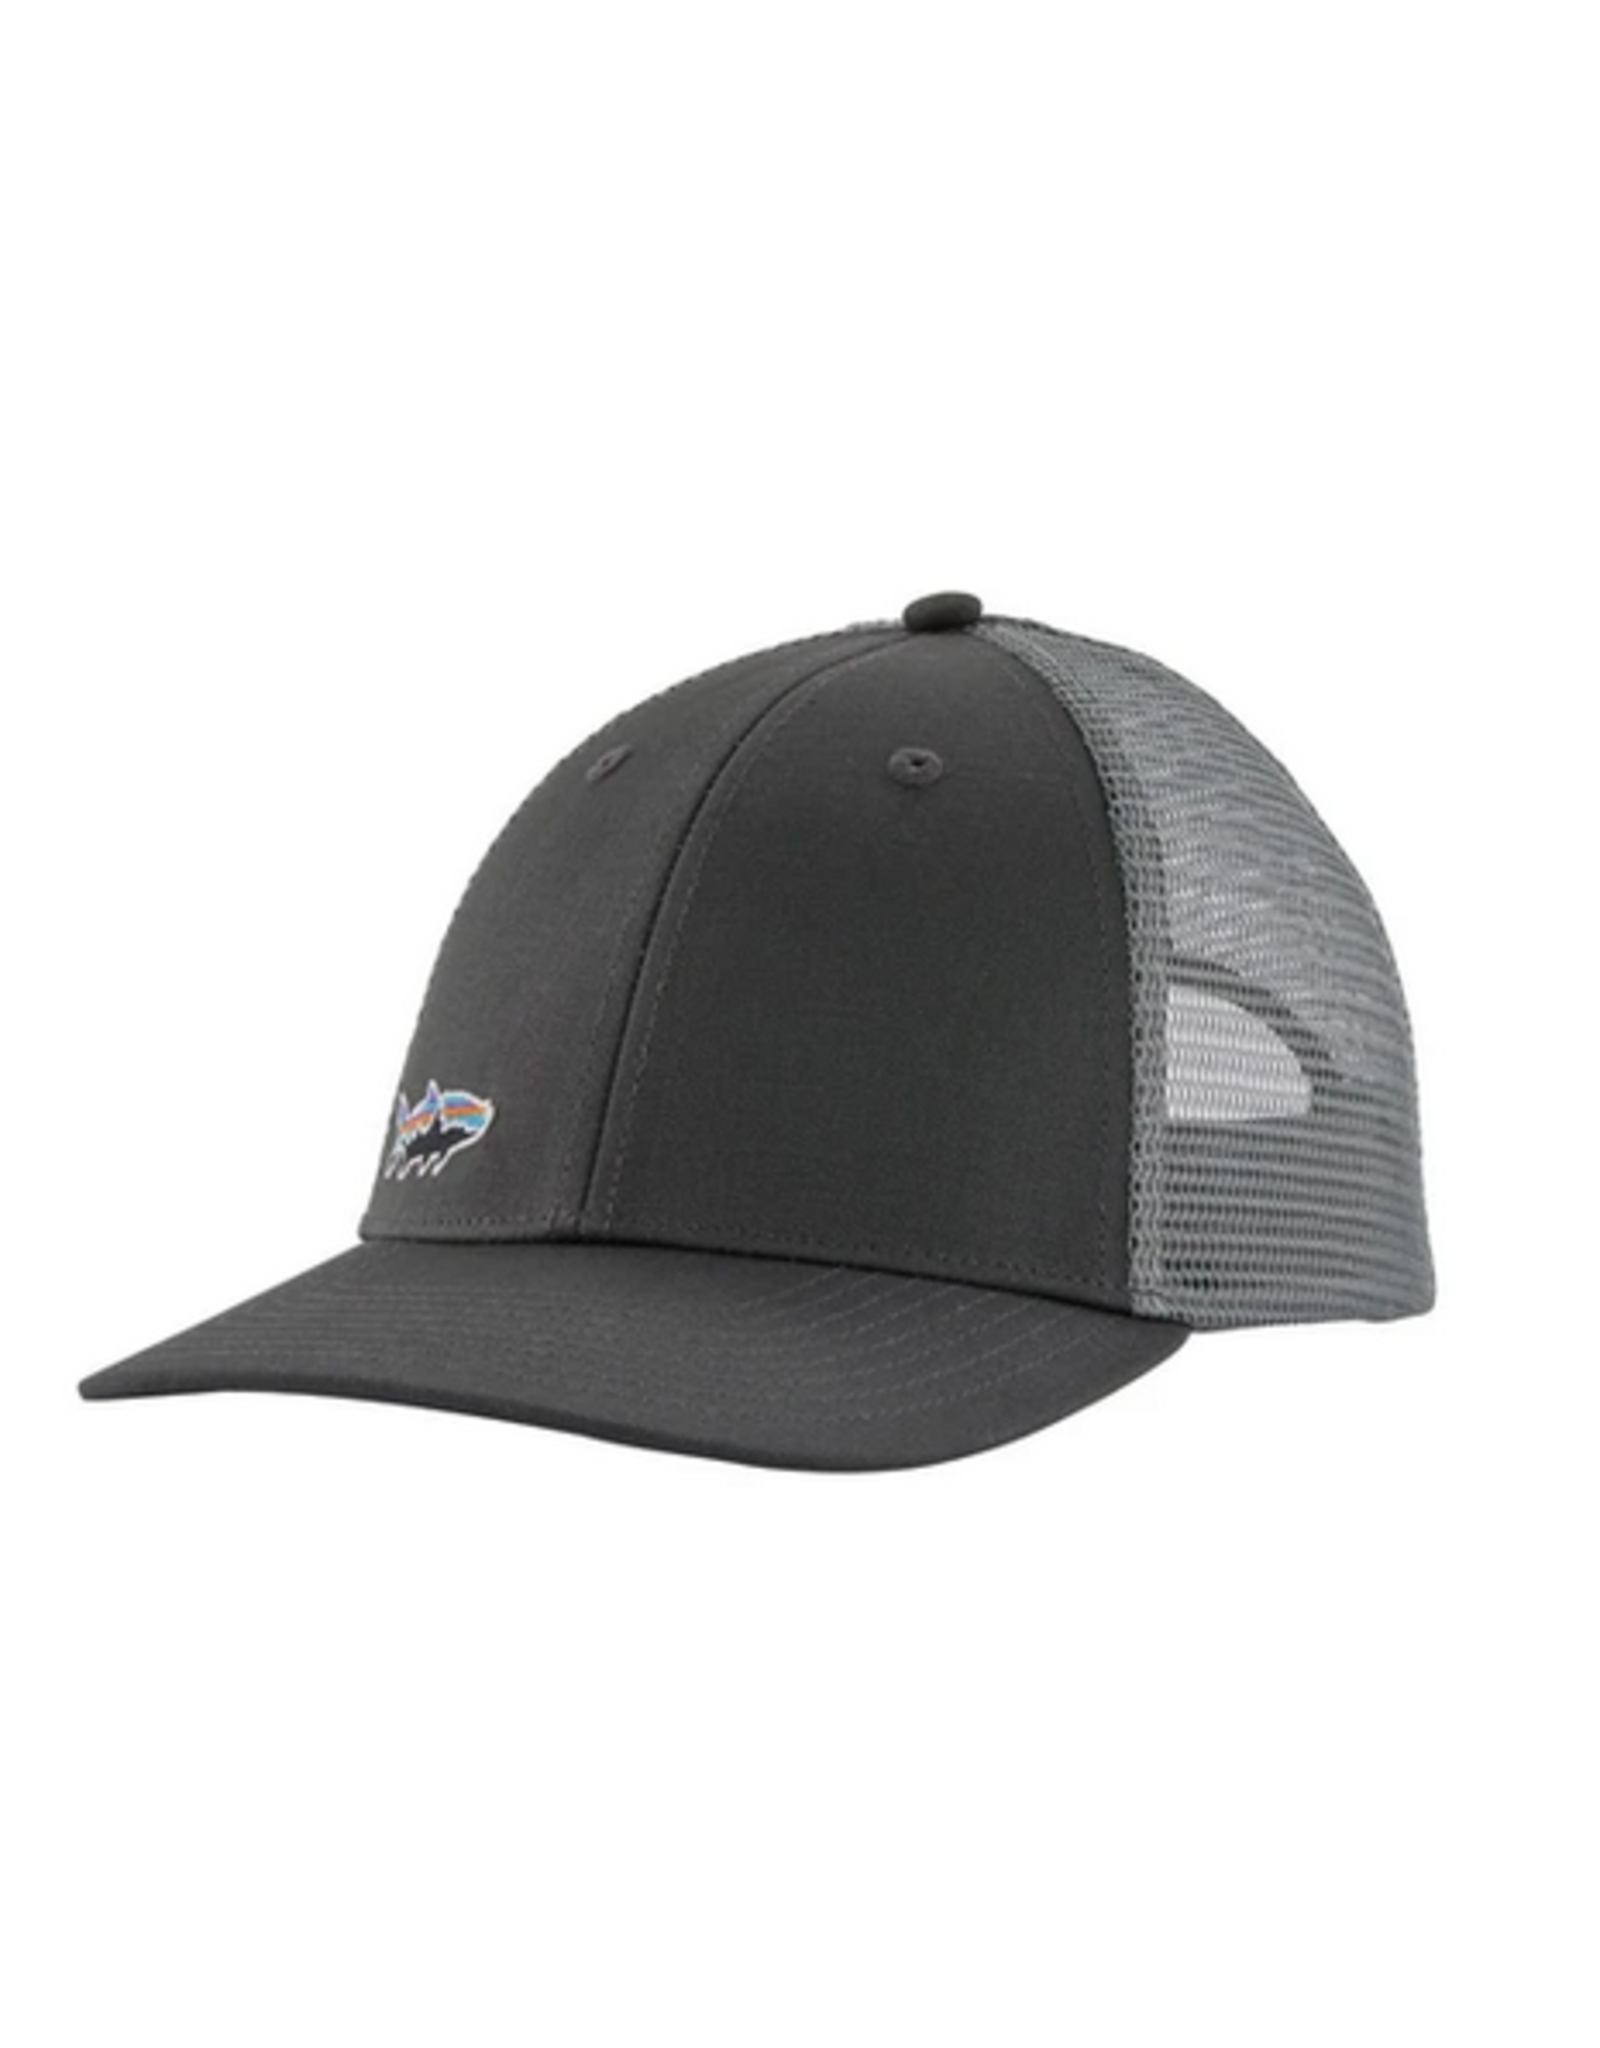 Patagonia Small Fitz Roy Fish LoPro Trucker Hat (Forge Grey)